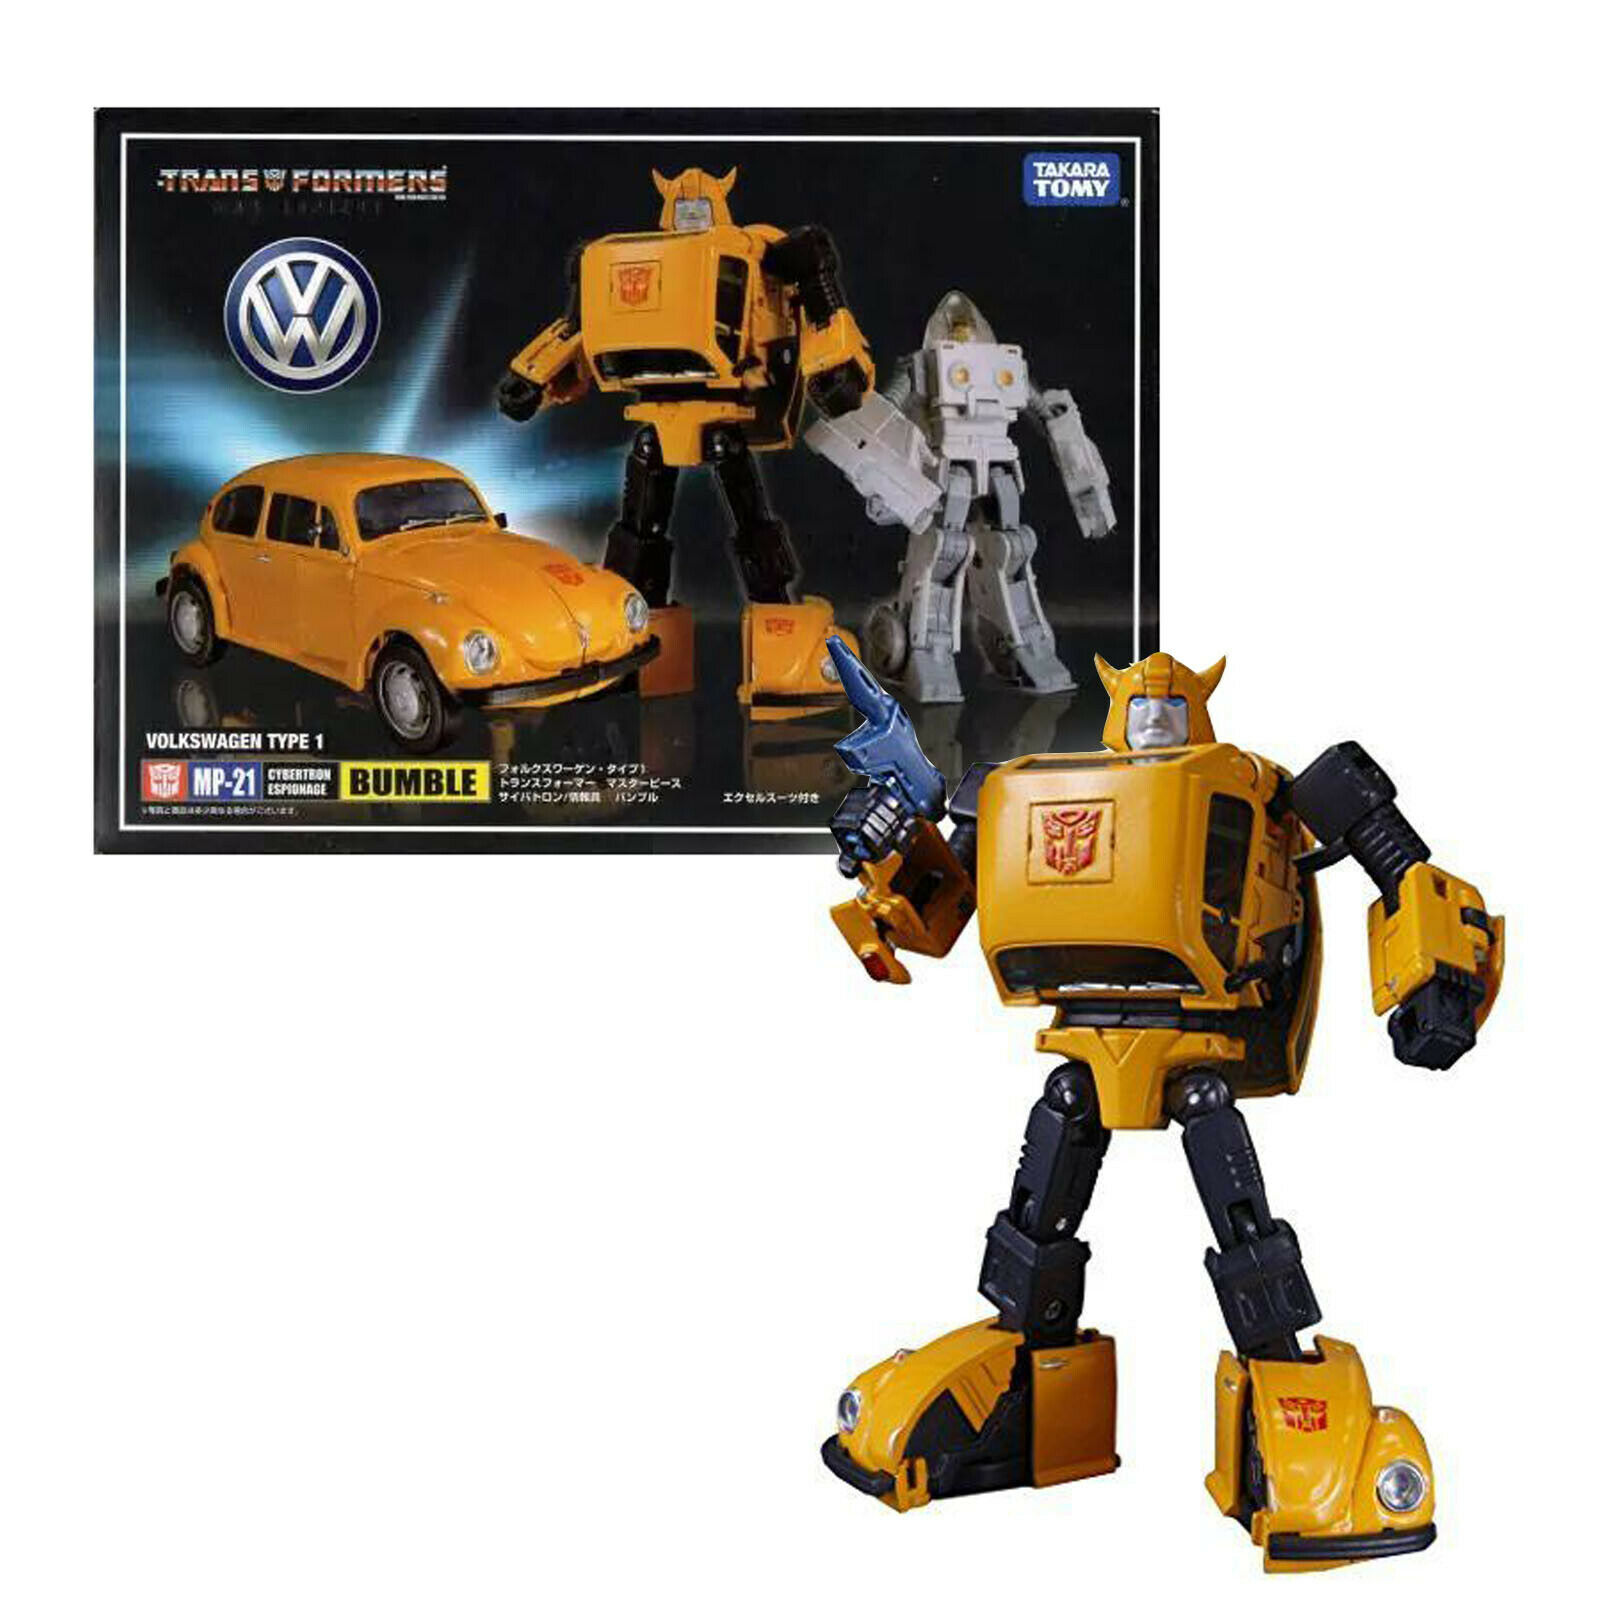 Transformers Masterpiece MP-21 BUMBLEBEE Action Figure Toy Gift